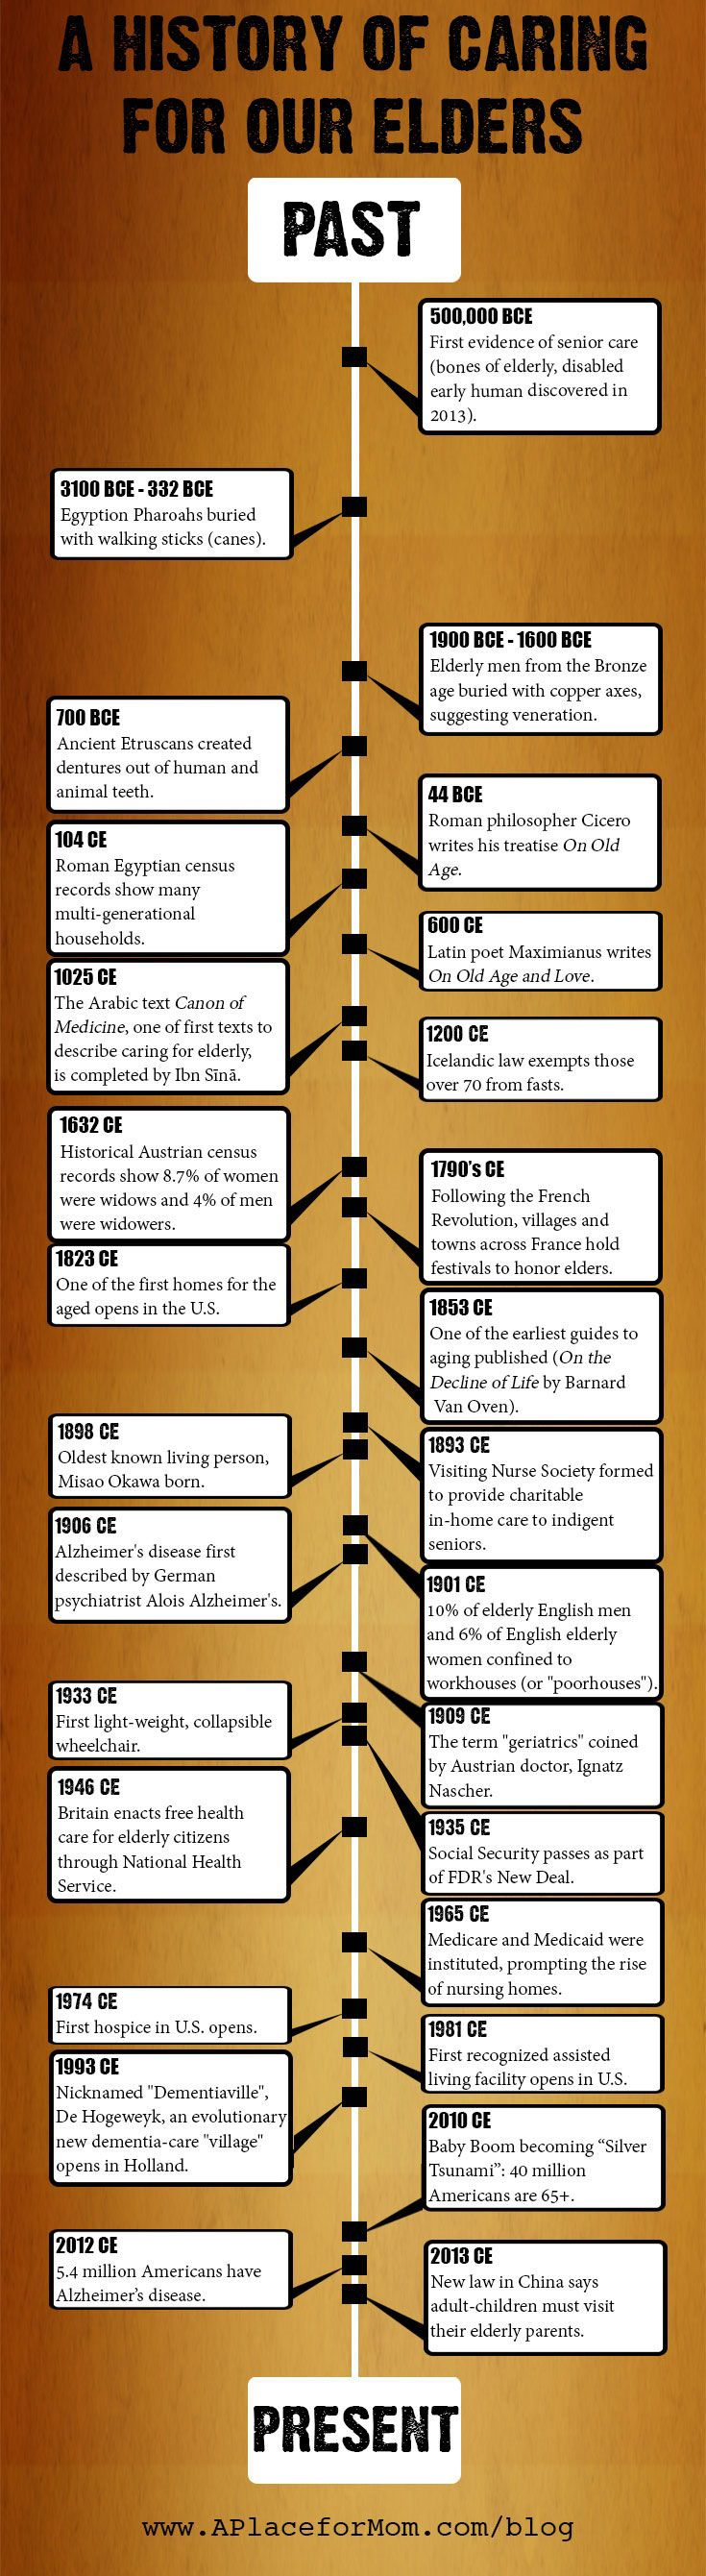 Timeline of senior care